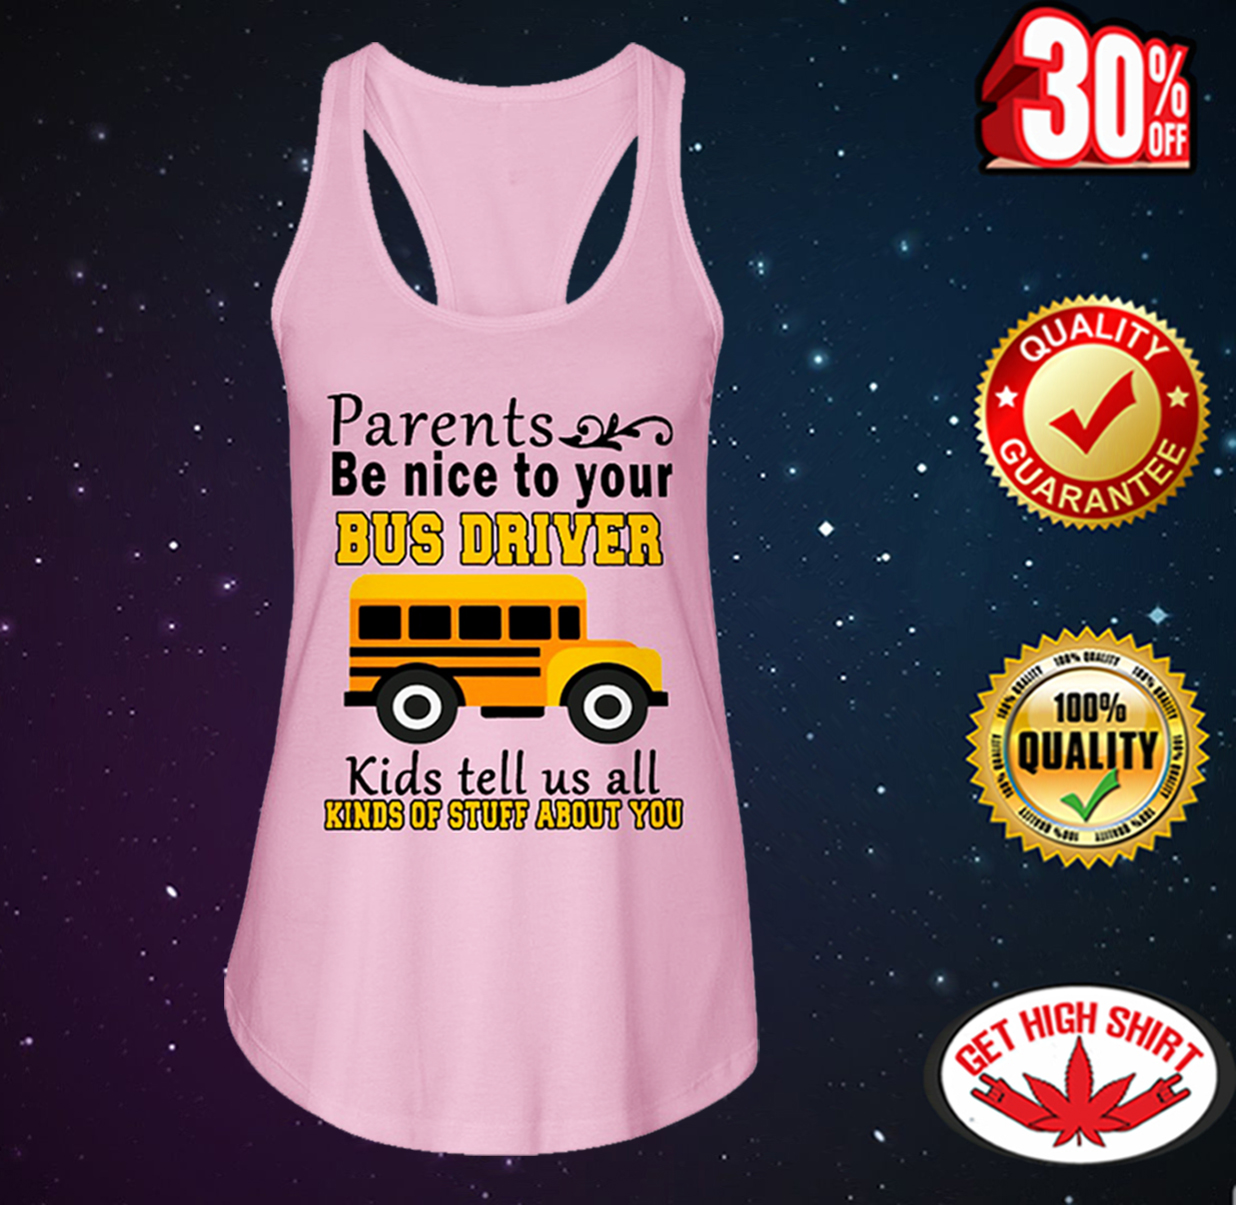 Parents be nice to your bus driver kids tell us all kinds of stuff about you flowy tank